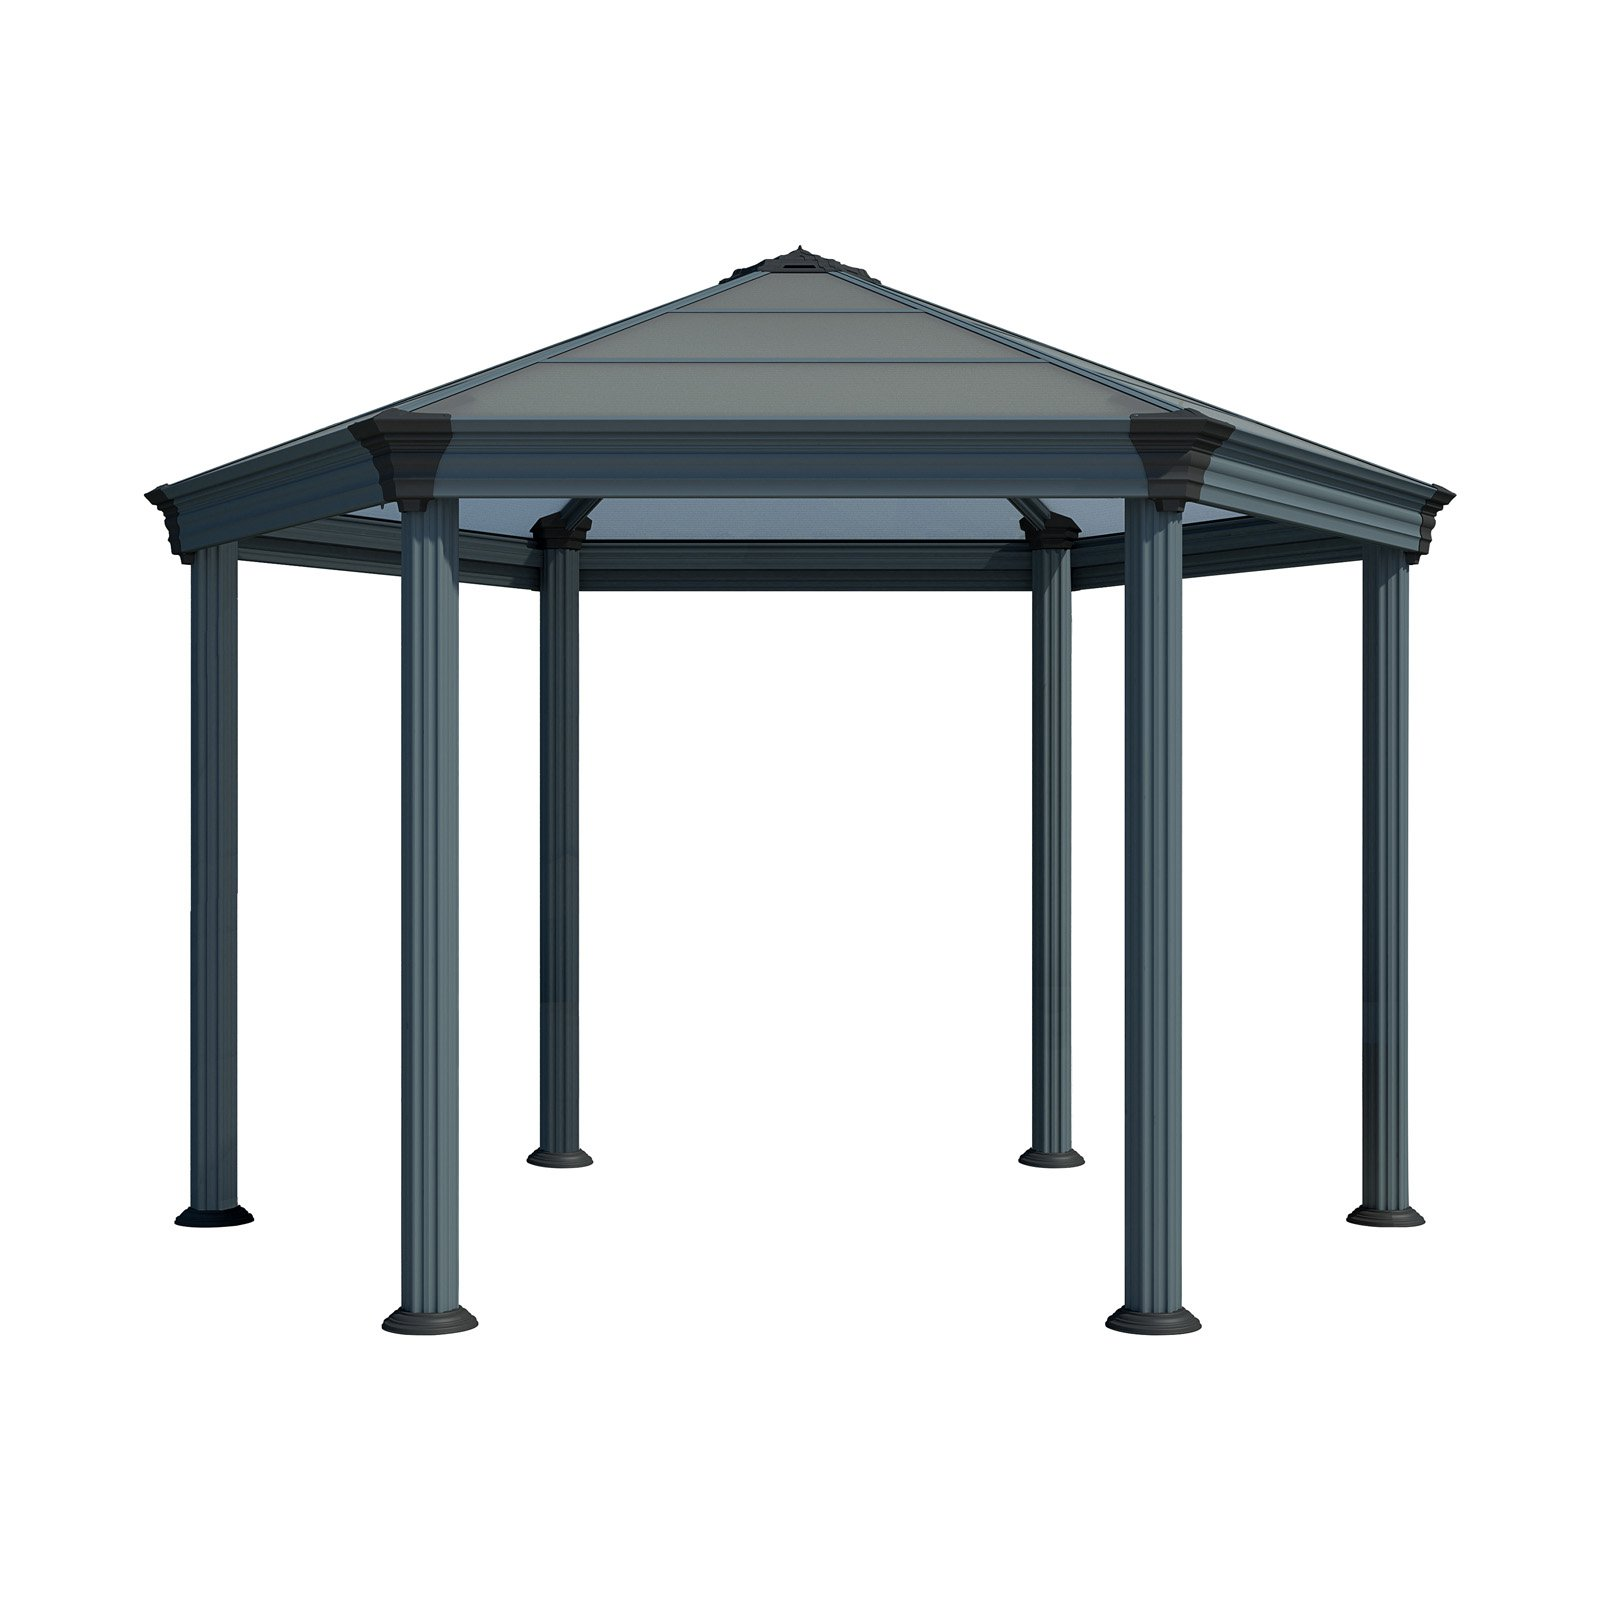 Palram Roma Hexagon Gazebo, Gray/Bronze